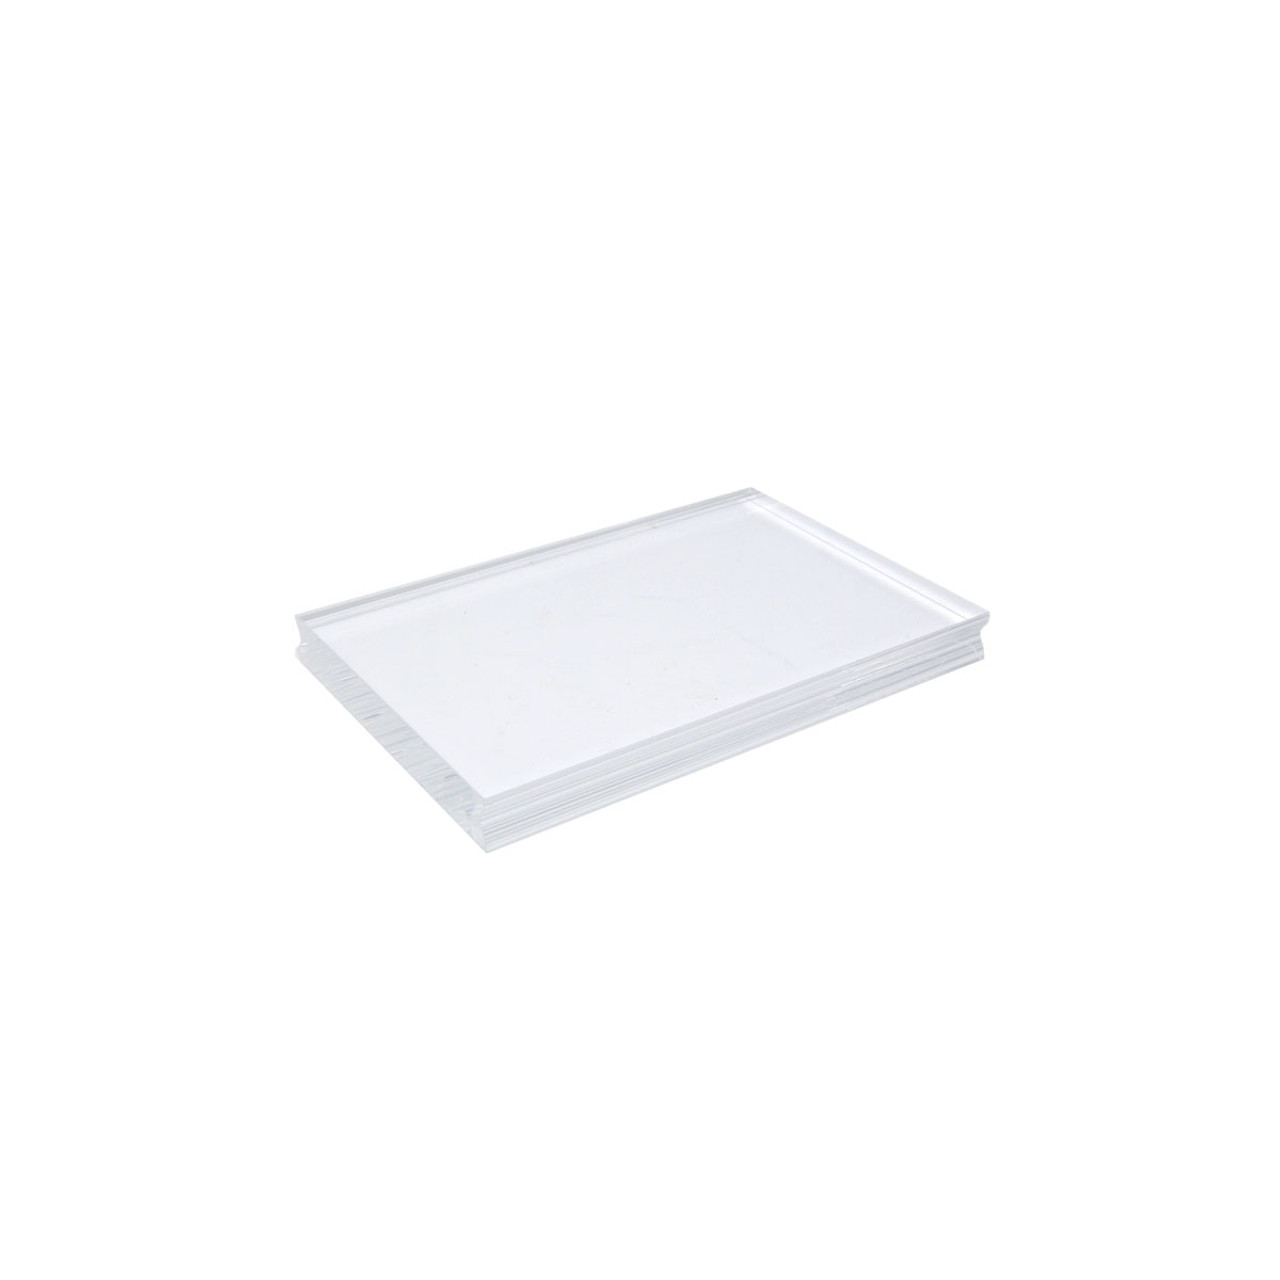 Acrylic Stamping Block Large - 100 x 150mm